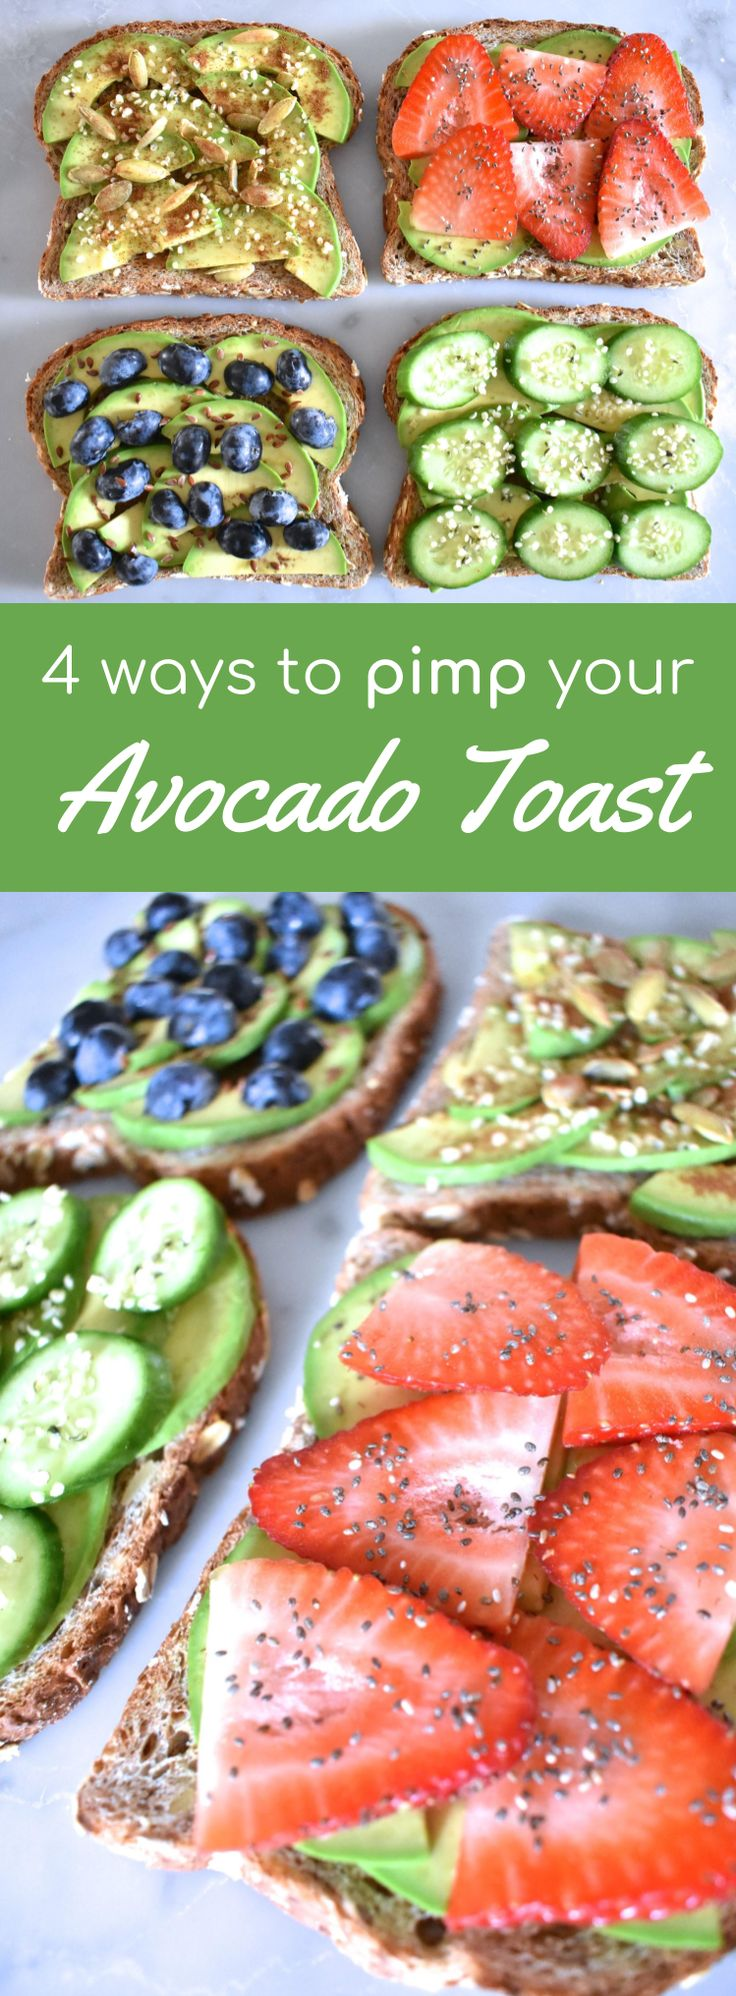 4 ways to pimp your Avocado Toast, vegan avocado toast, breakfast toast, toast that's not boring, vegan breakfast, the best way to make avocado toast, healthy avocado toast, plant based breakfast